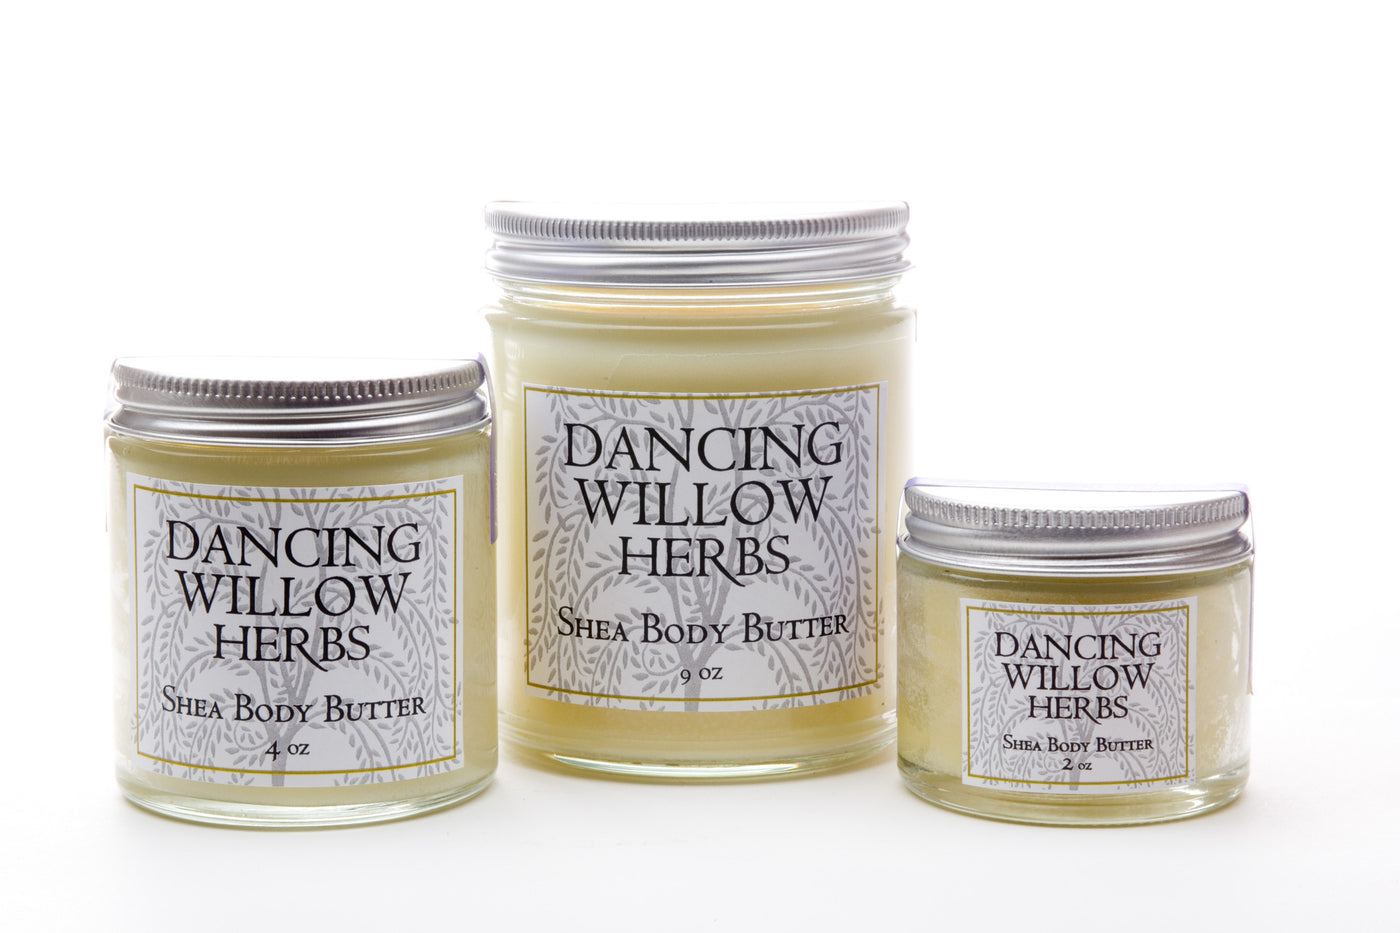 Dancing Willow Herbs Lavender Body Butter - Dancing Willow Herbs body butter - herbal formulas